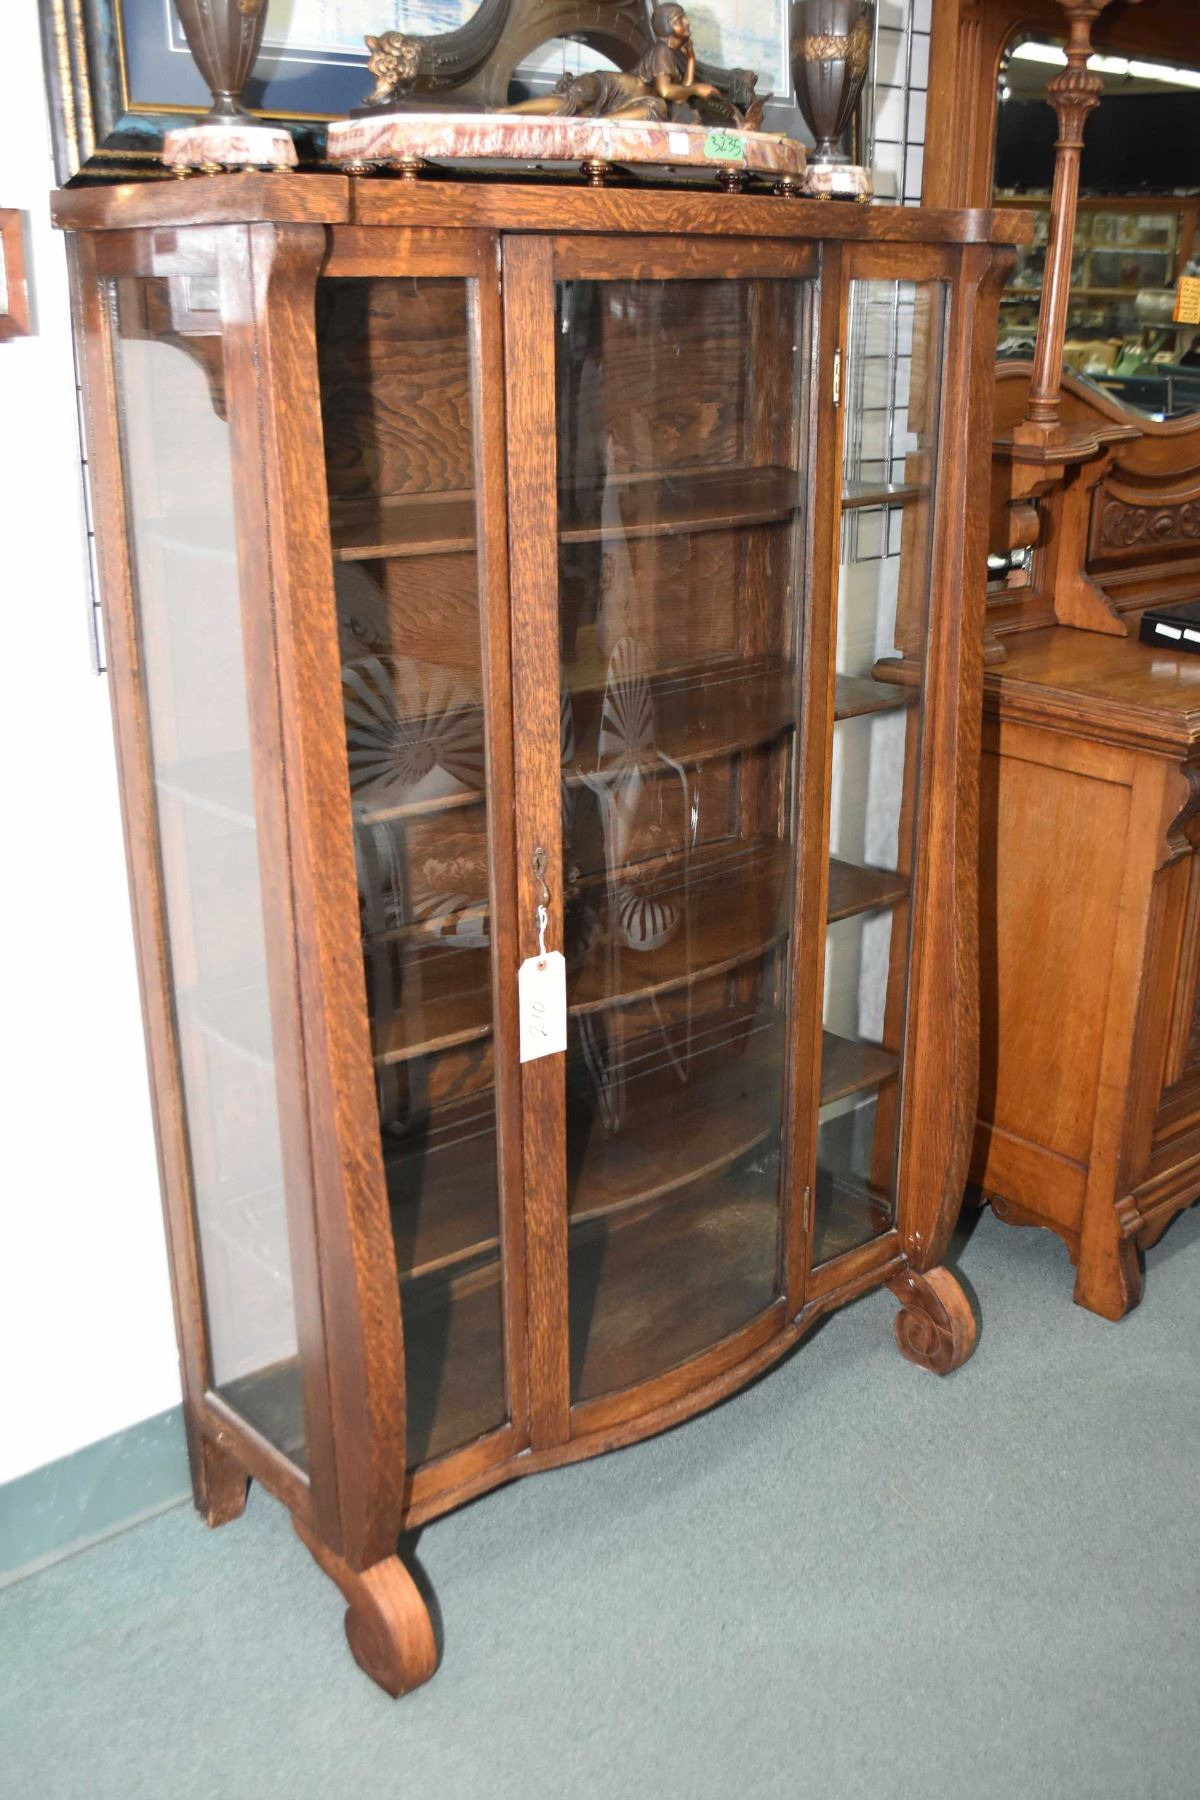 Antique quarter cut oak Empire style display cabinet with glass side panels and curved glass door i